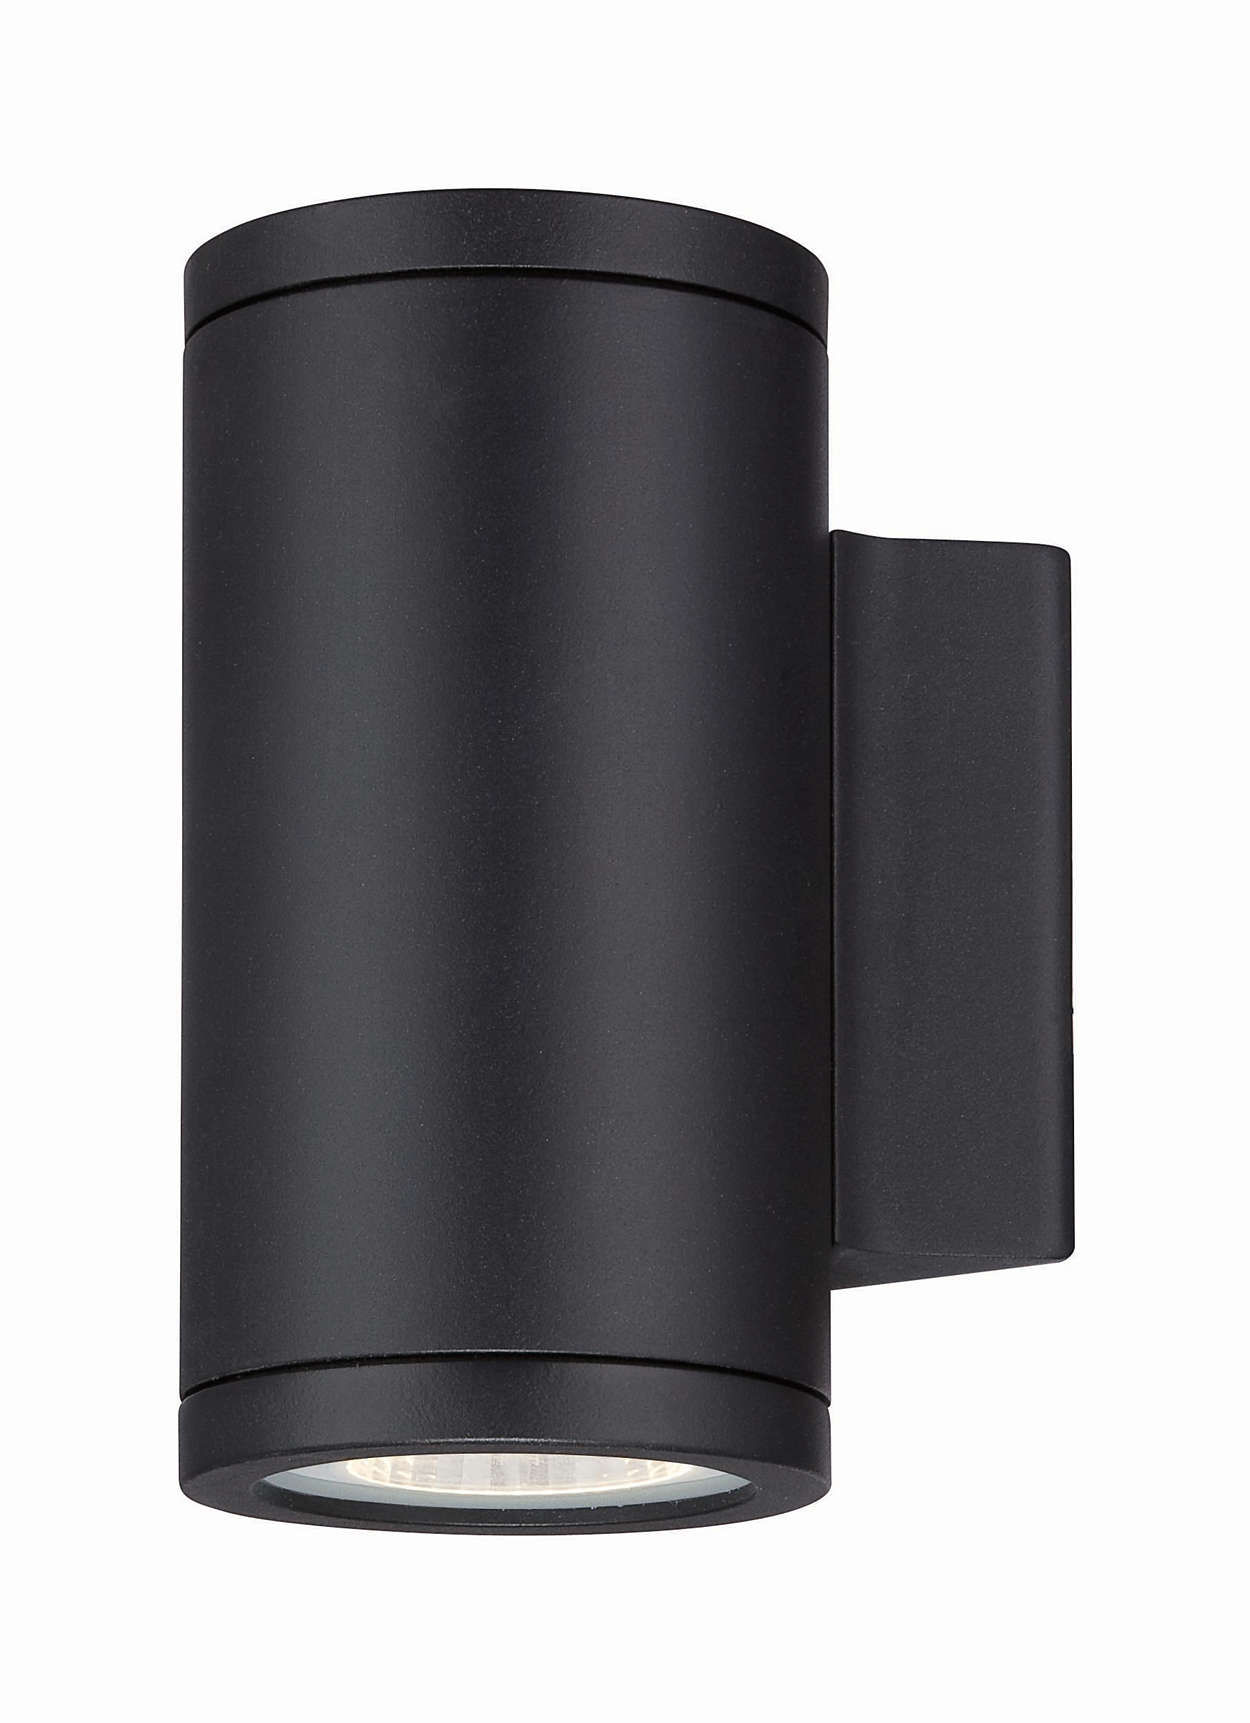 Wall light fl0008030 forecast download image amipublicfo Choice Image